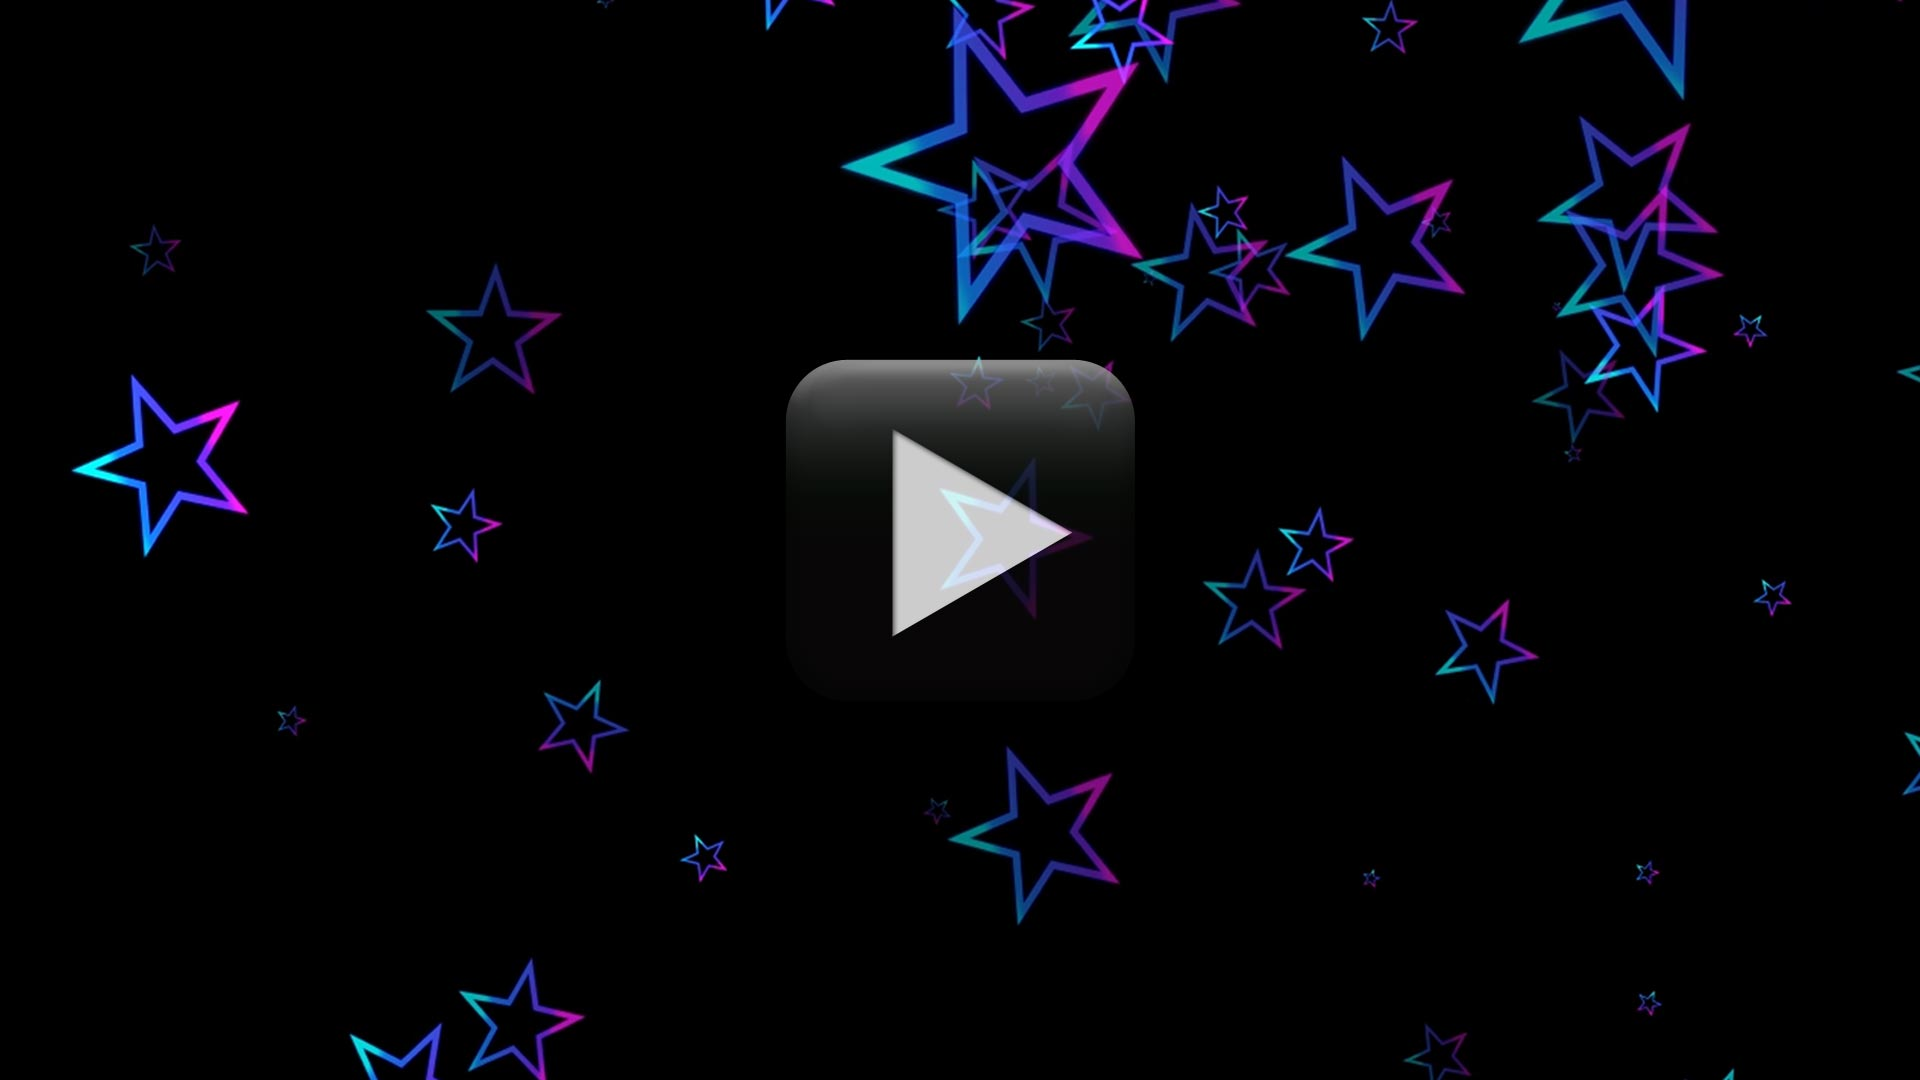 Free Download Stars Animated Background in Black Screen